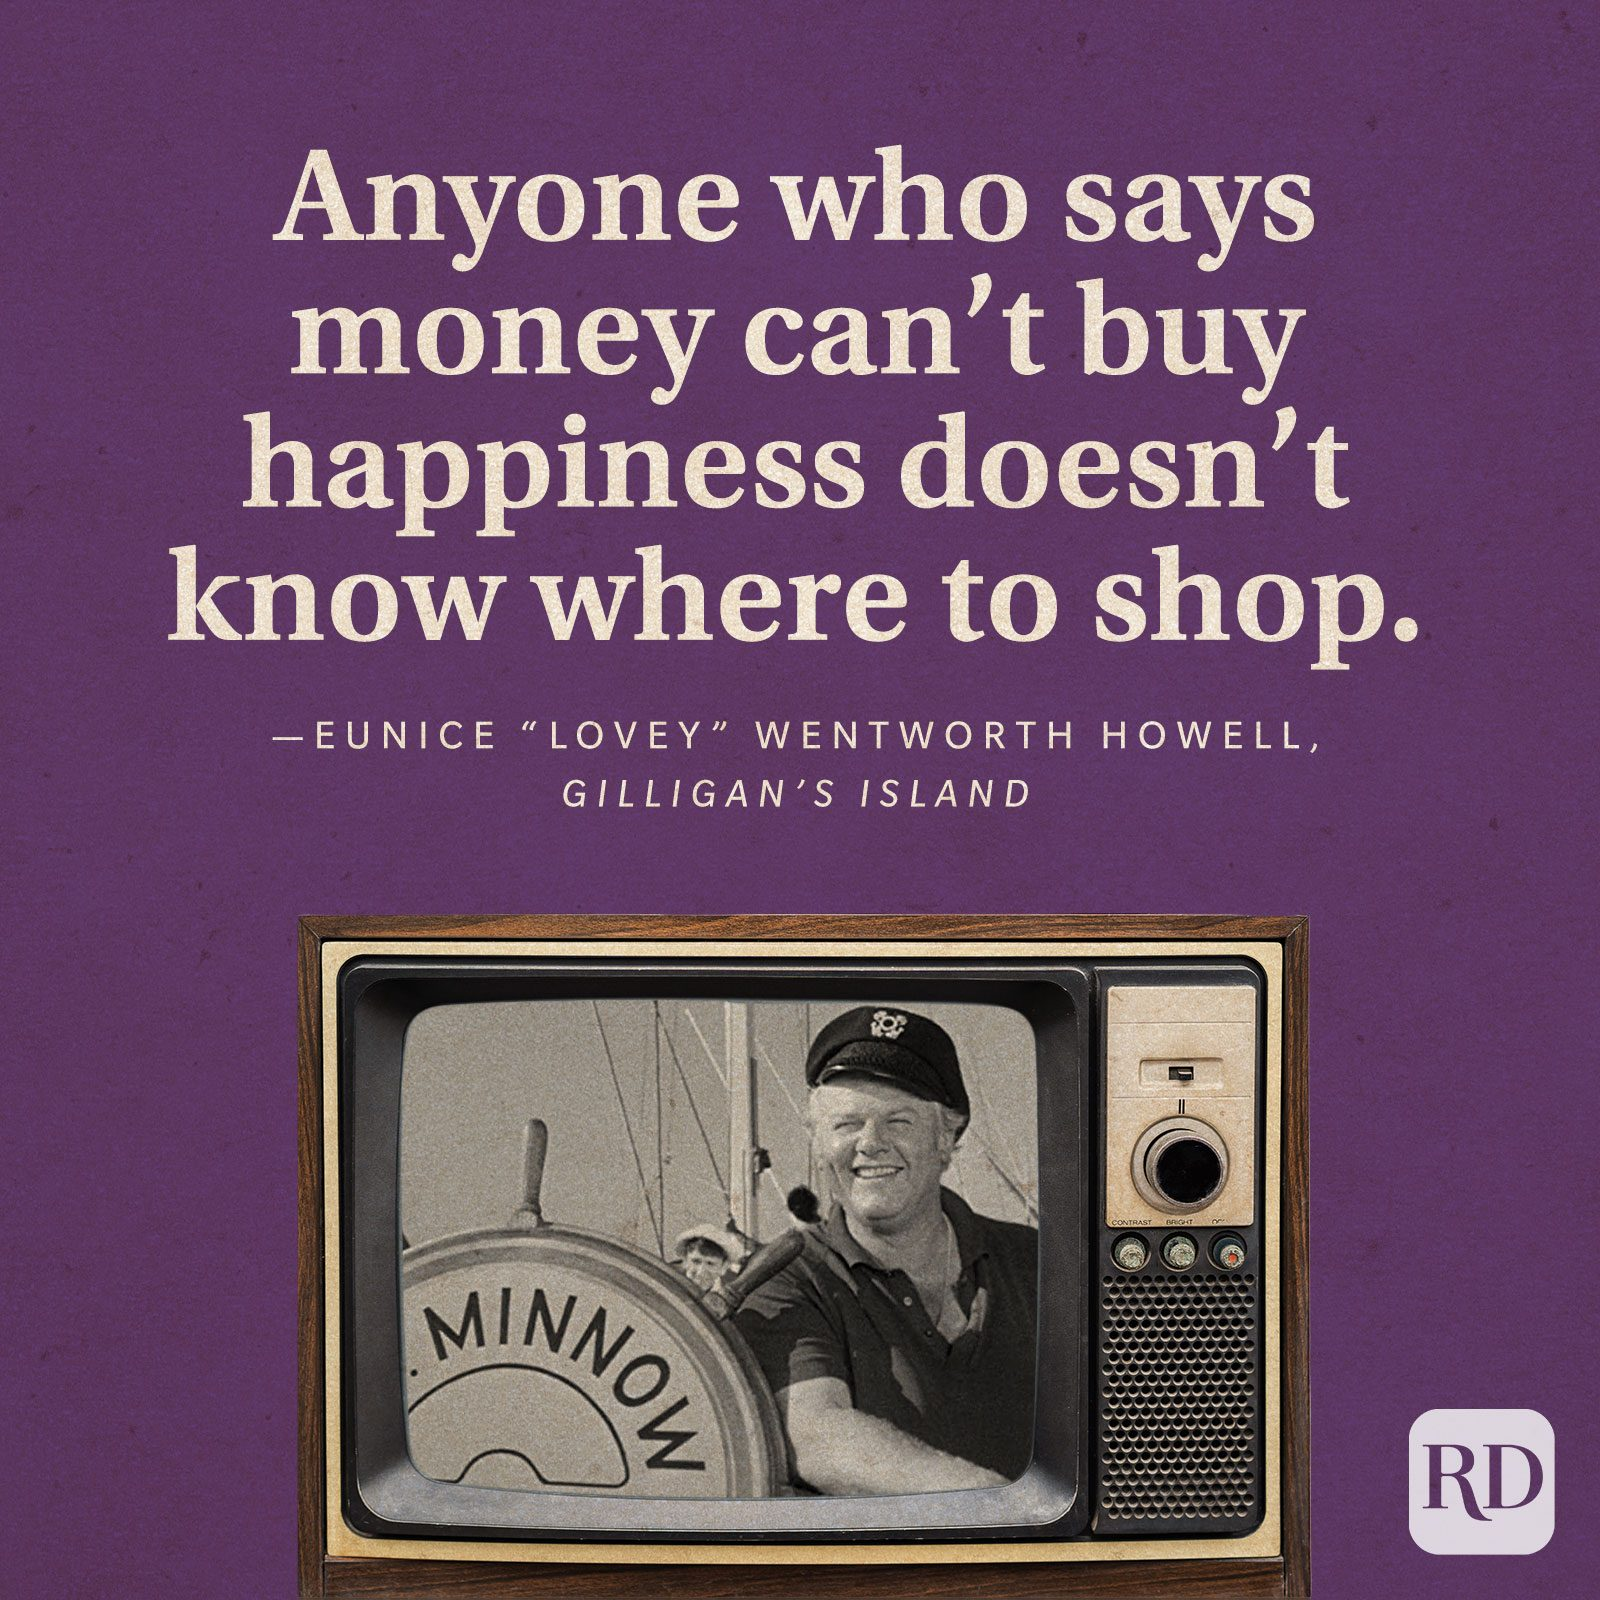 """""""Anyone who says money can't buy happiness doesn't know where to shop."""" —Eunice """"Lovey"""" Wentworth Howell in Gilligan's Island."""